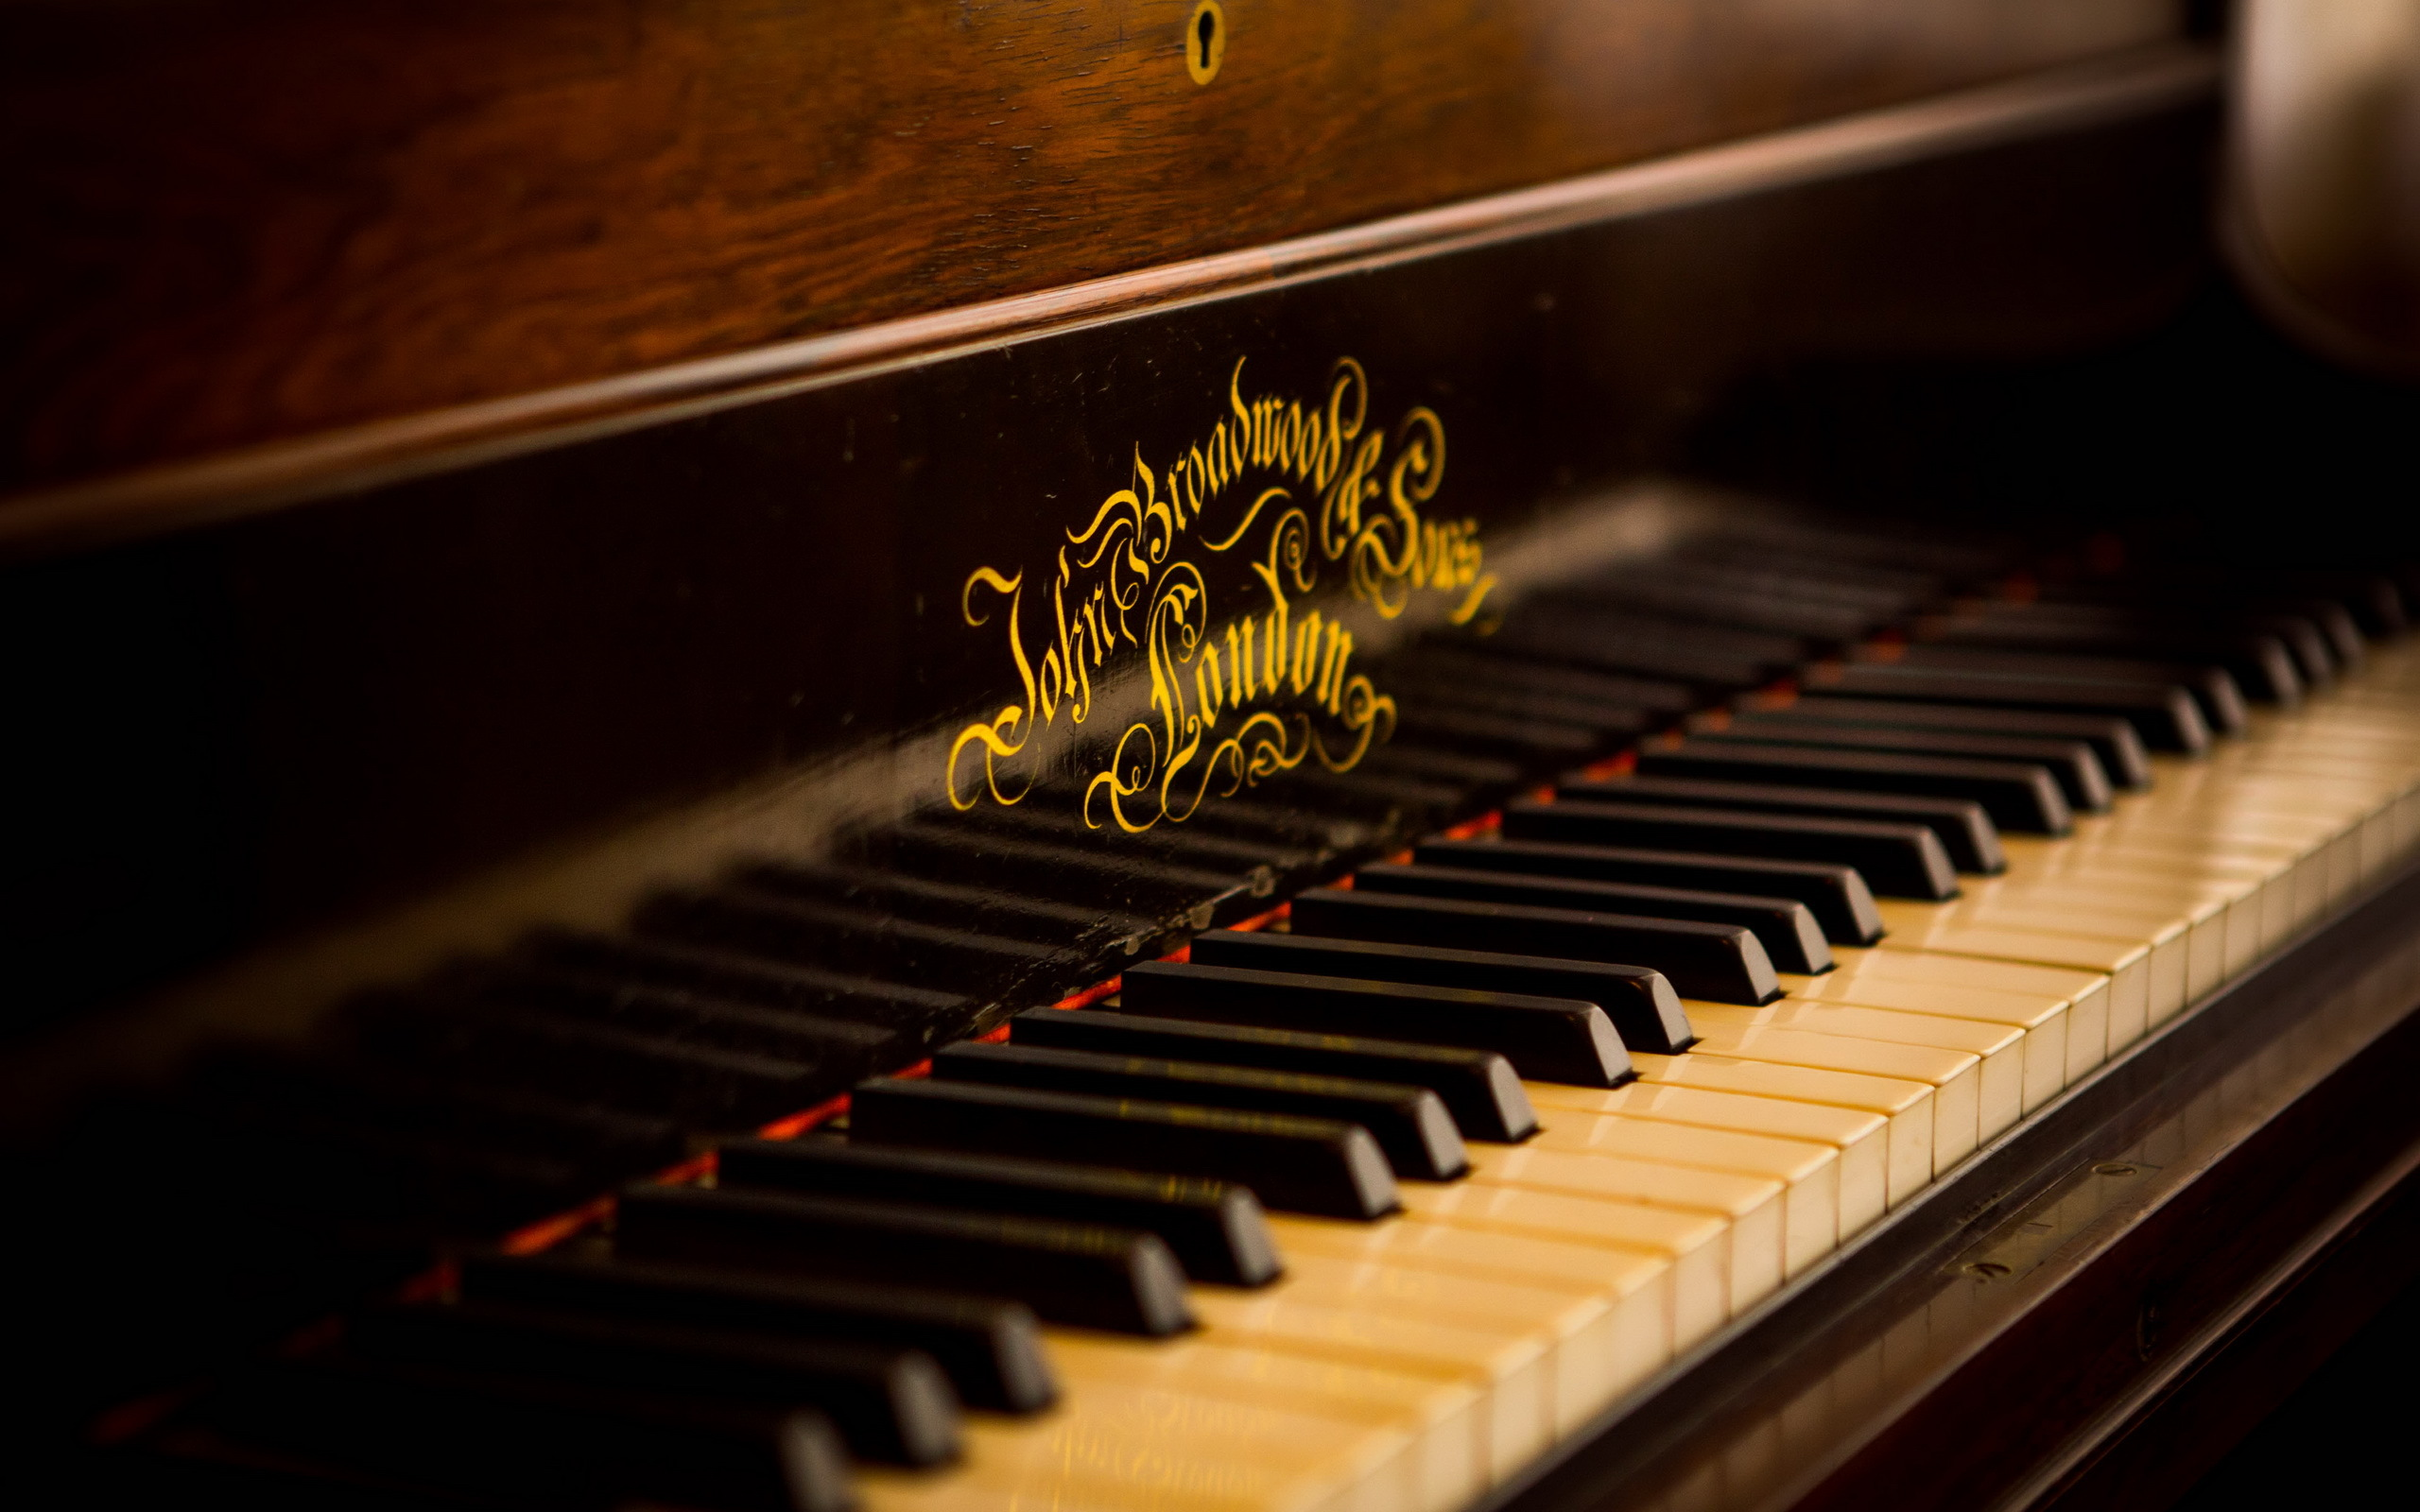 Piano Music Wallpaper: Piano Background Music